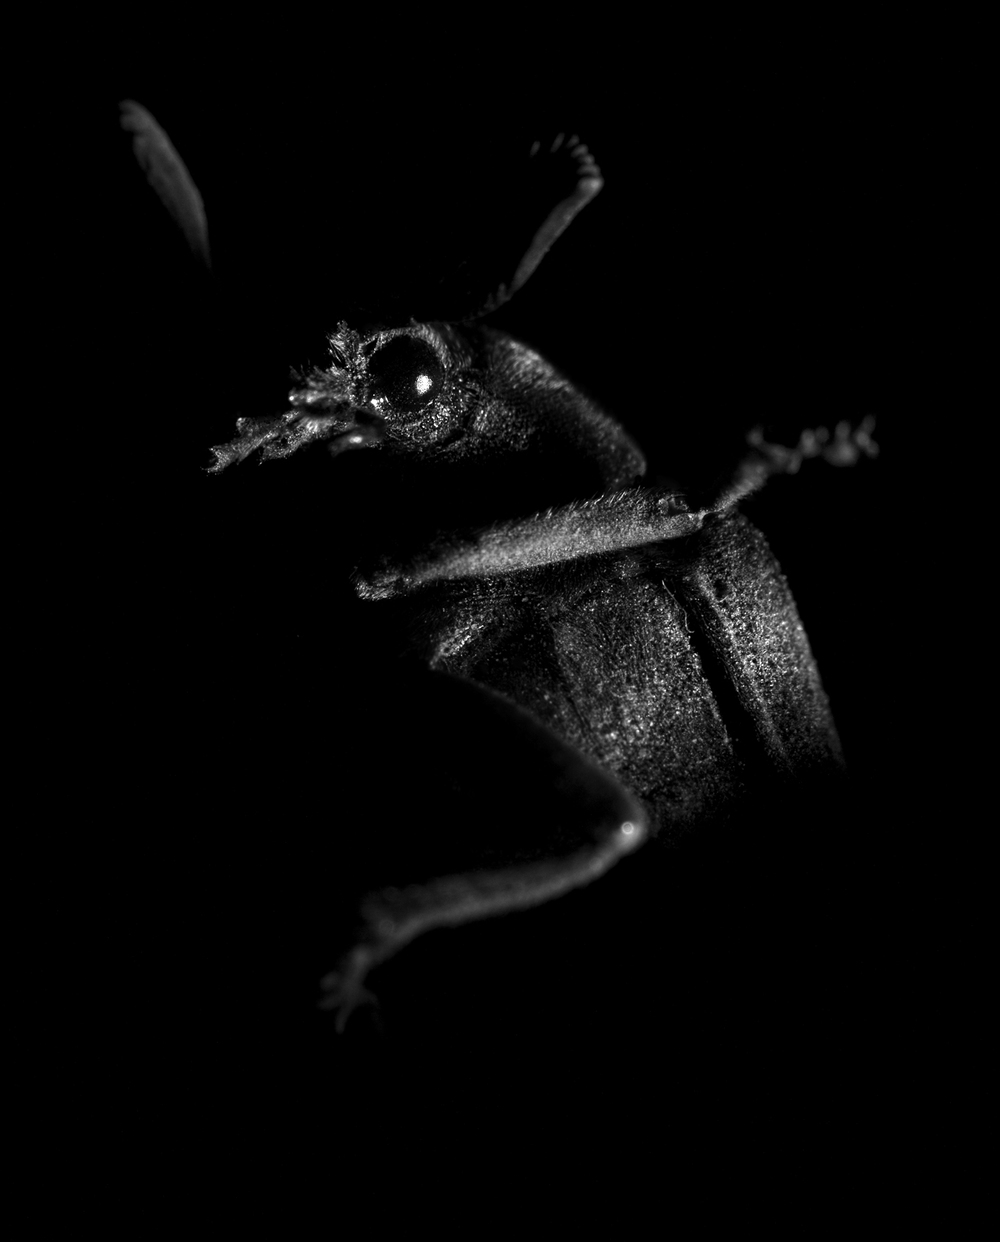 beetle with feather antennae (1 of 1) copy.jpg